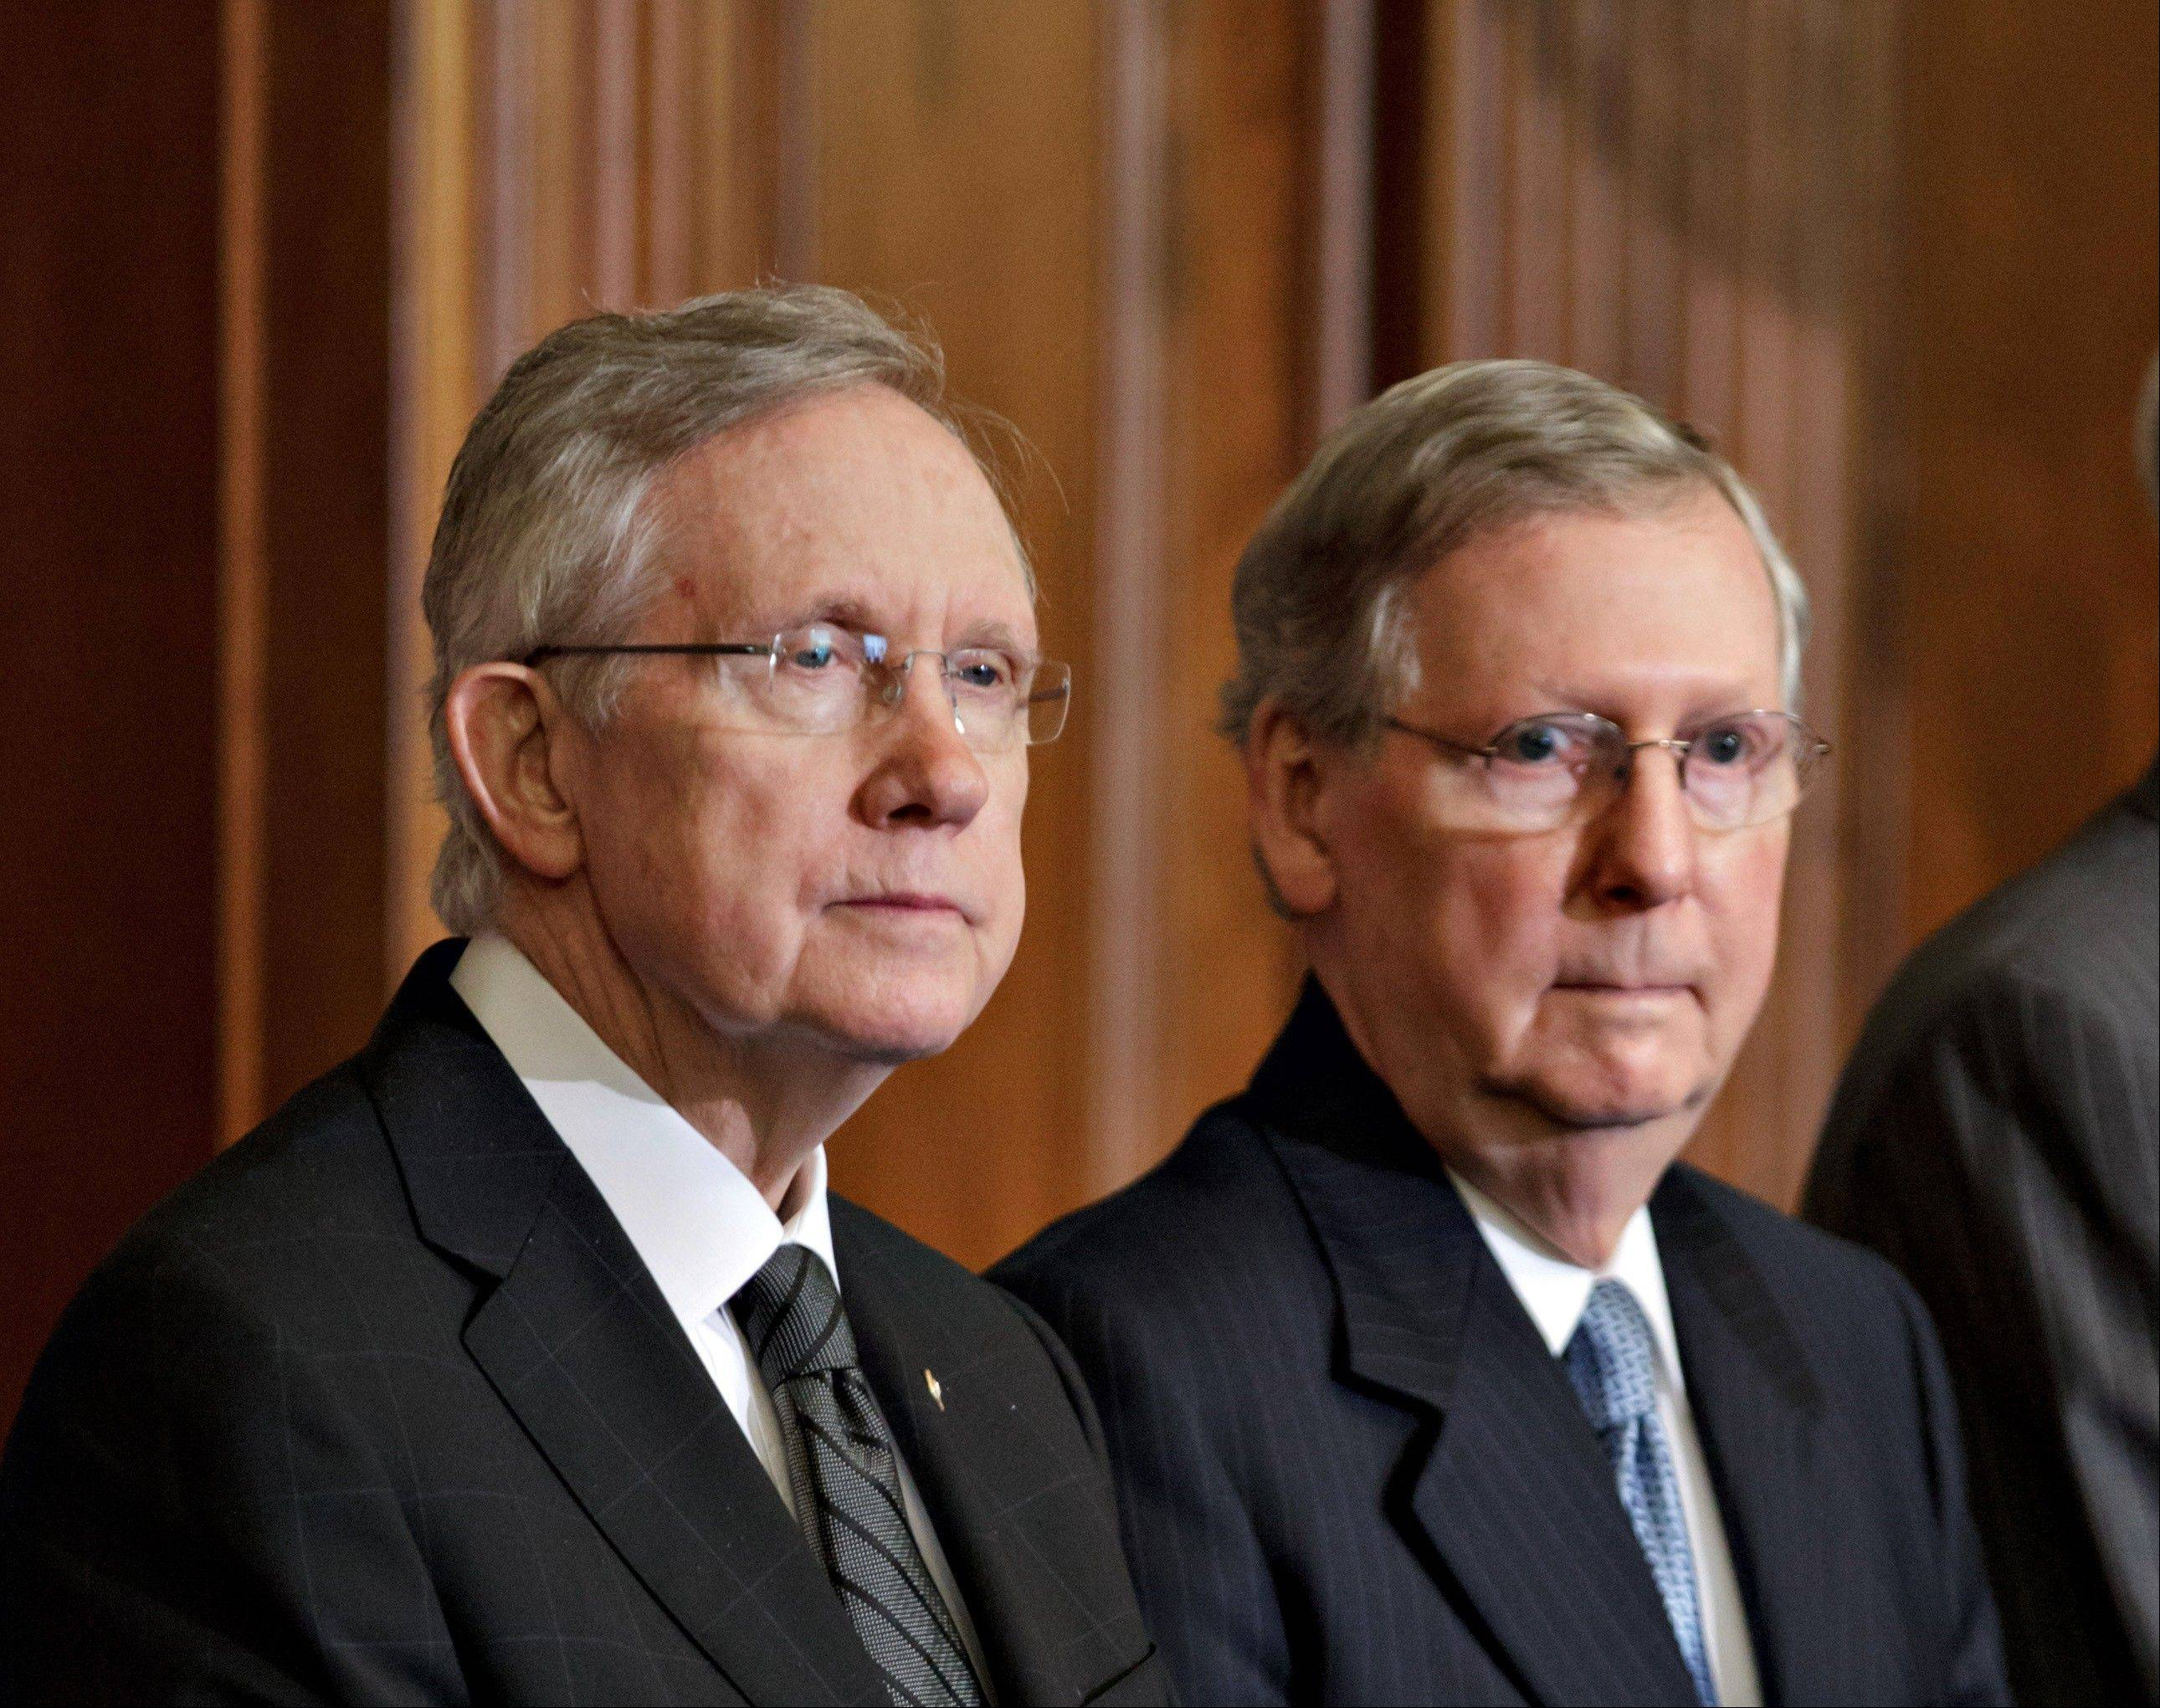 Senate Majority Leader, Democrat Harry Reid of Nevada, and Senate Minority Leader, Republican Mitch McConnell of Kentucky, right, sparred Sunday on a morning news program. Today the Senate holds a rare closed-door session, where all senators will consider a proposal to change Senate rules to remove a 60-vote threshold for President Barack Obama's nominations to win confirmation.